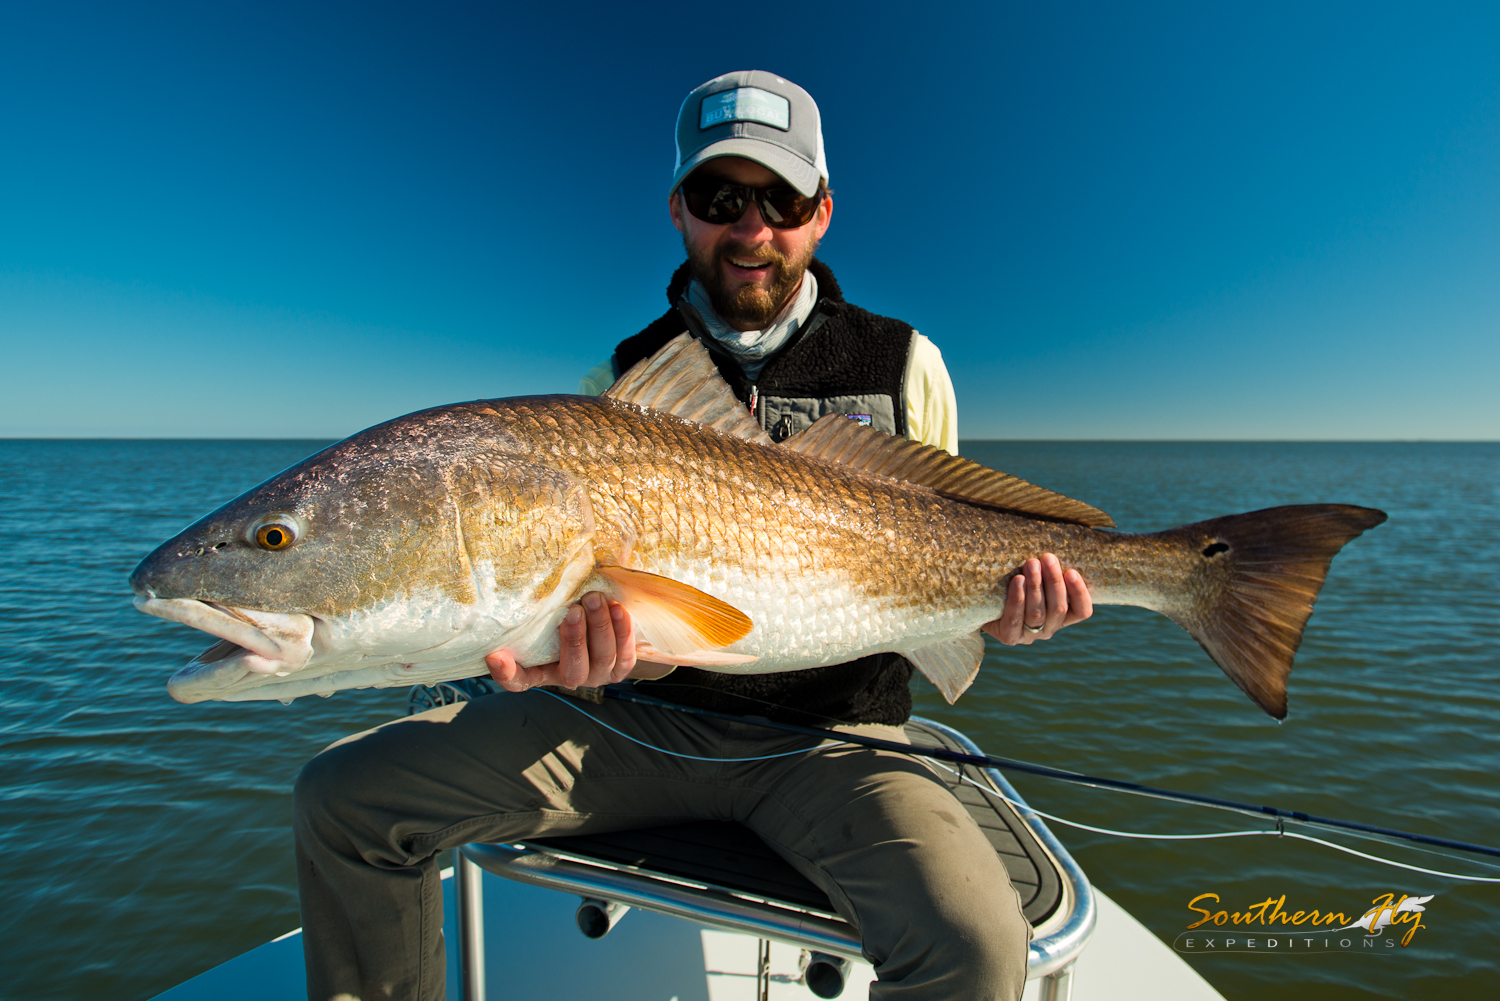 fly fishing for redfish in louisiana with Southern Fly Expeditions - the best fly fishing guide in the state of Louisiana